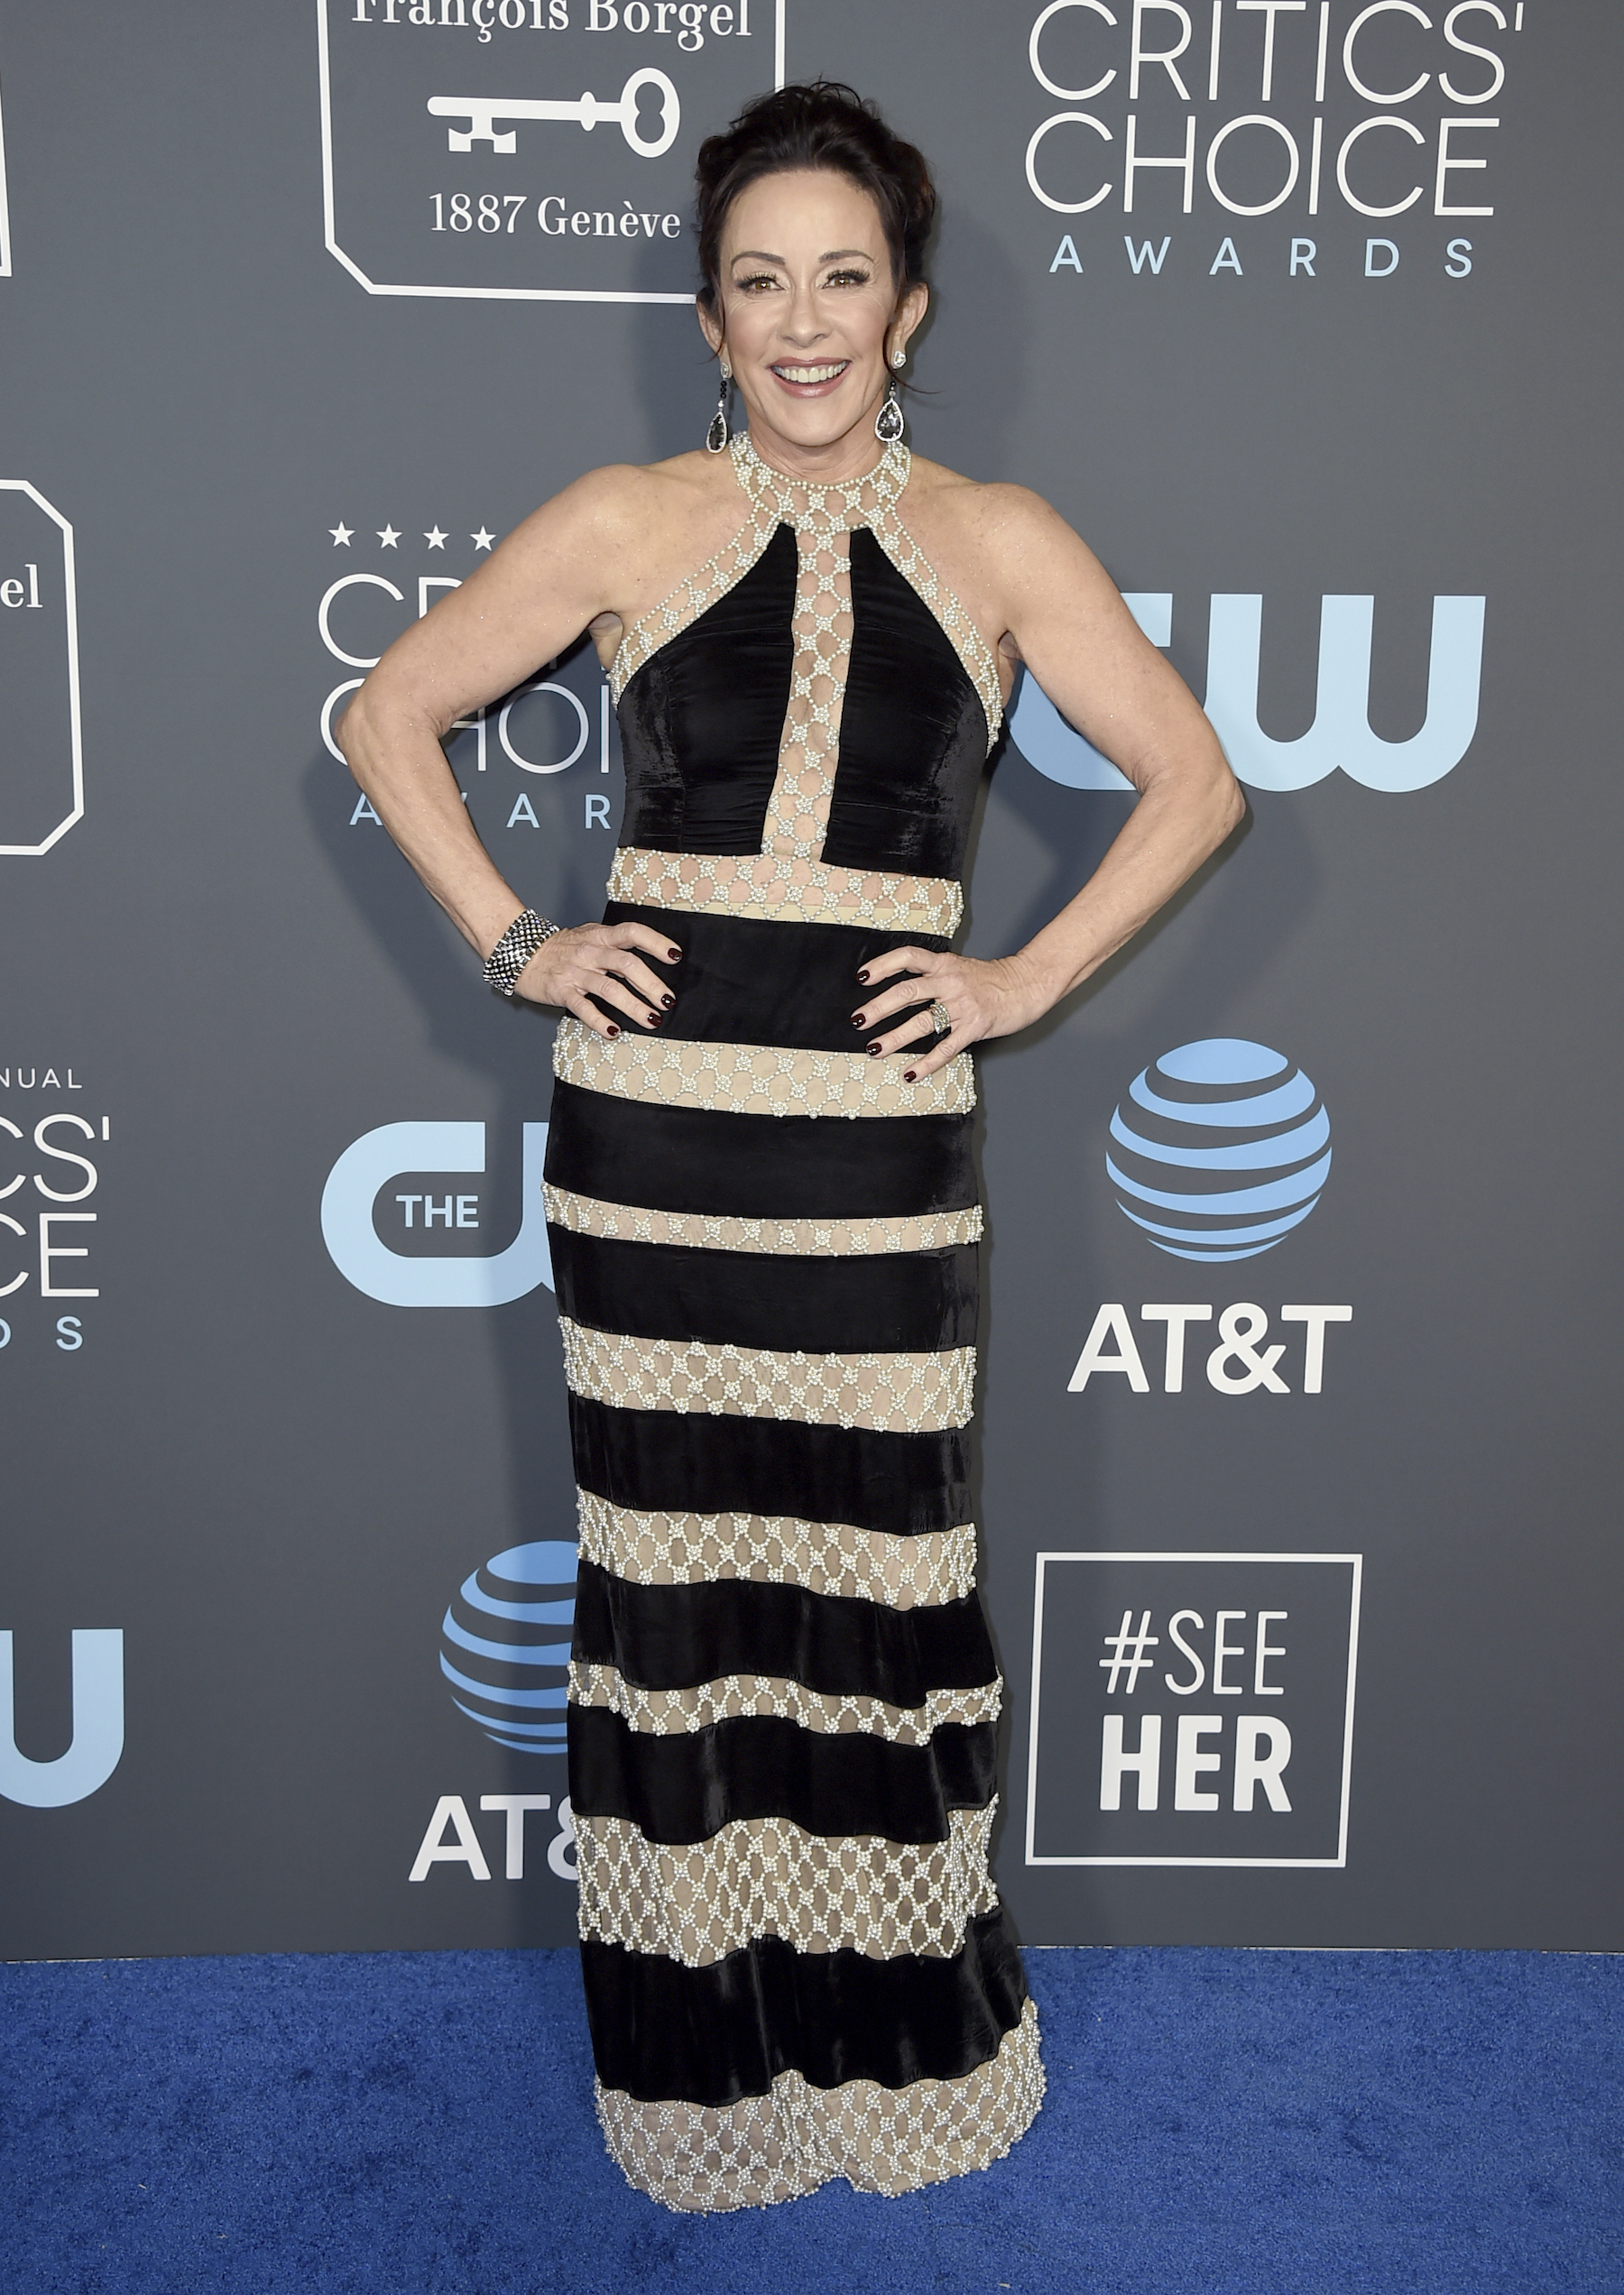 "<div class=""meta image-caption""><div class=""origin-logo origin-image ap""><span>AP</span></div><span class=""caption-text"">Patricia Heaton arrives at the 24th annual Critics' Choice Awards on Sunday, Jan. 13, 2019, at the Barker Hangar in Santa Monica, Calif. (Jordan Strauss/Invision/AP)</span></div>"